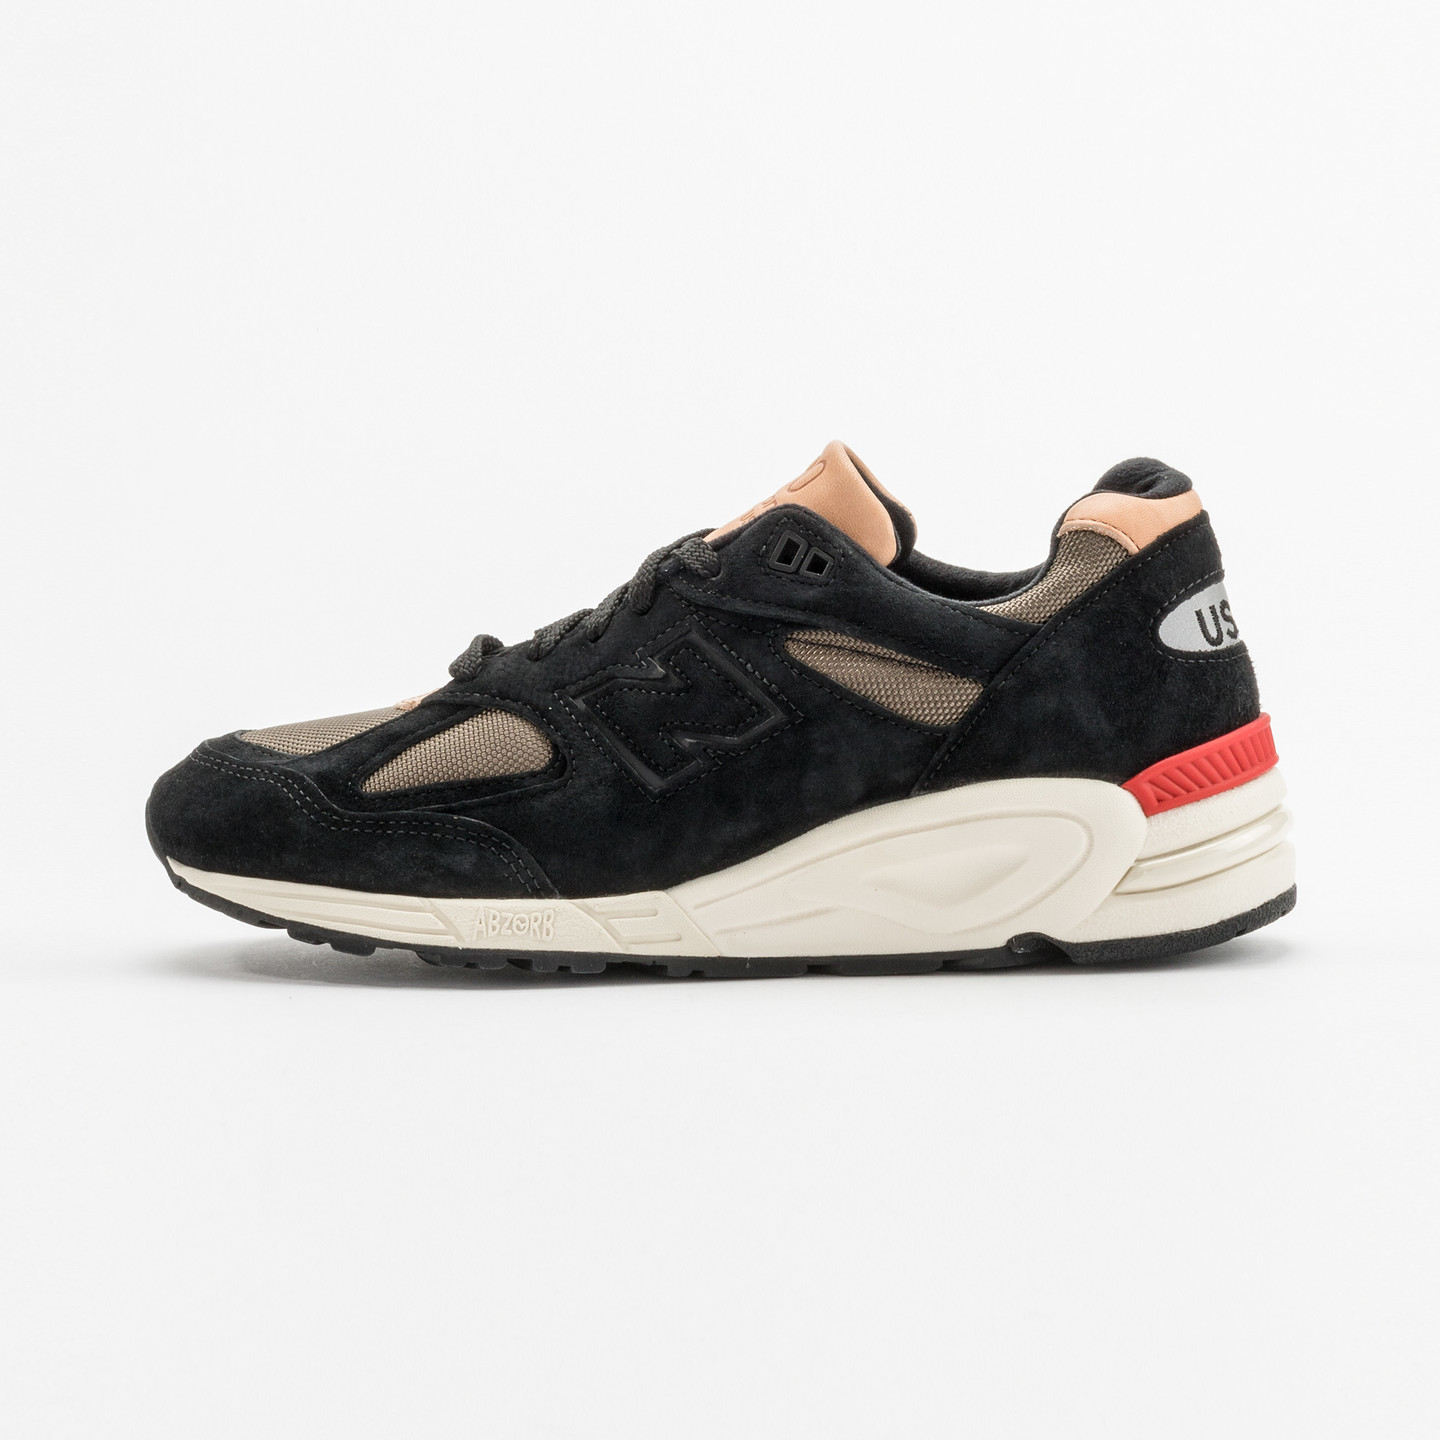 New Balance M990 - Made in USA Black / Off-White / Red M990CDB2